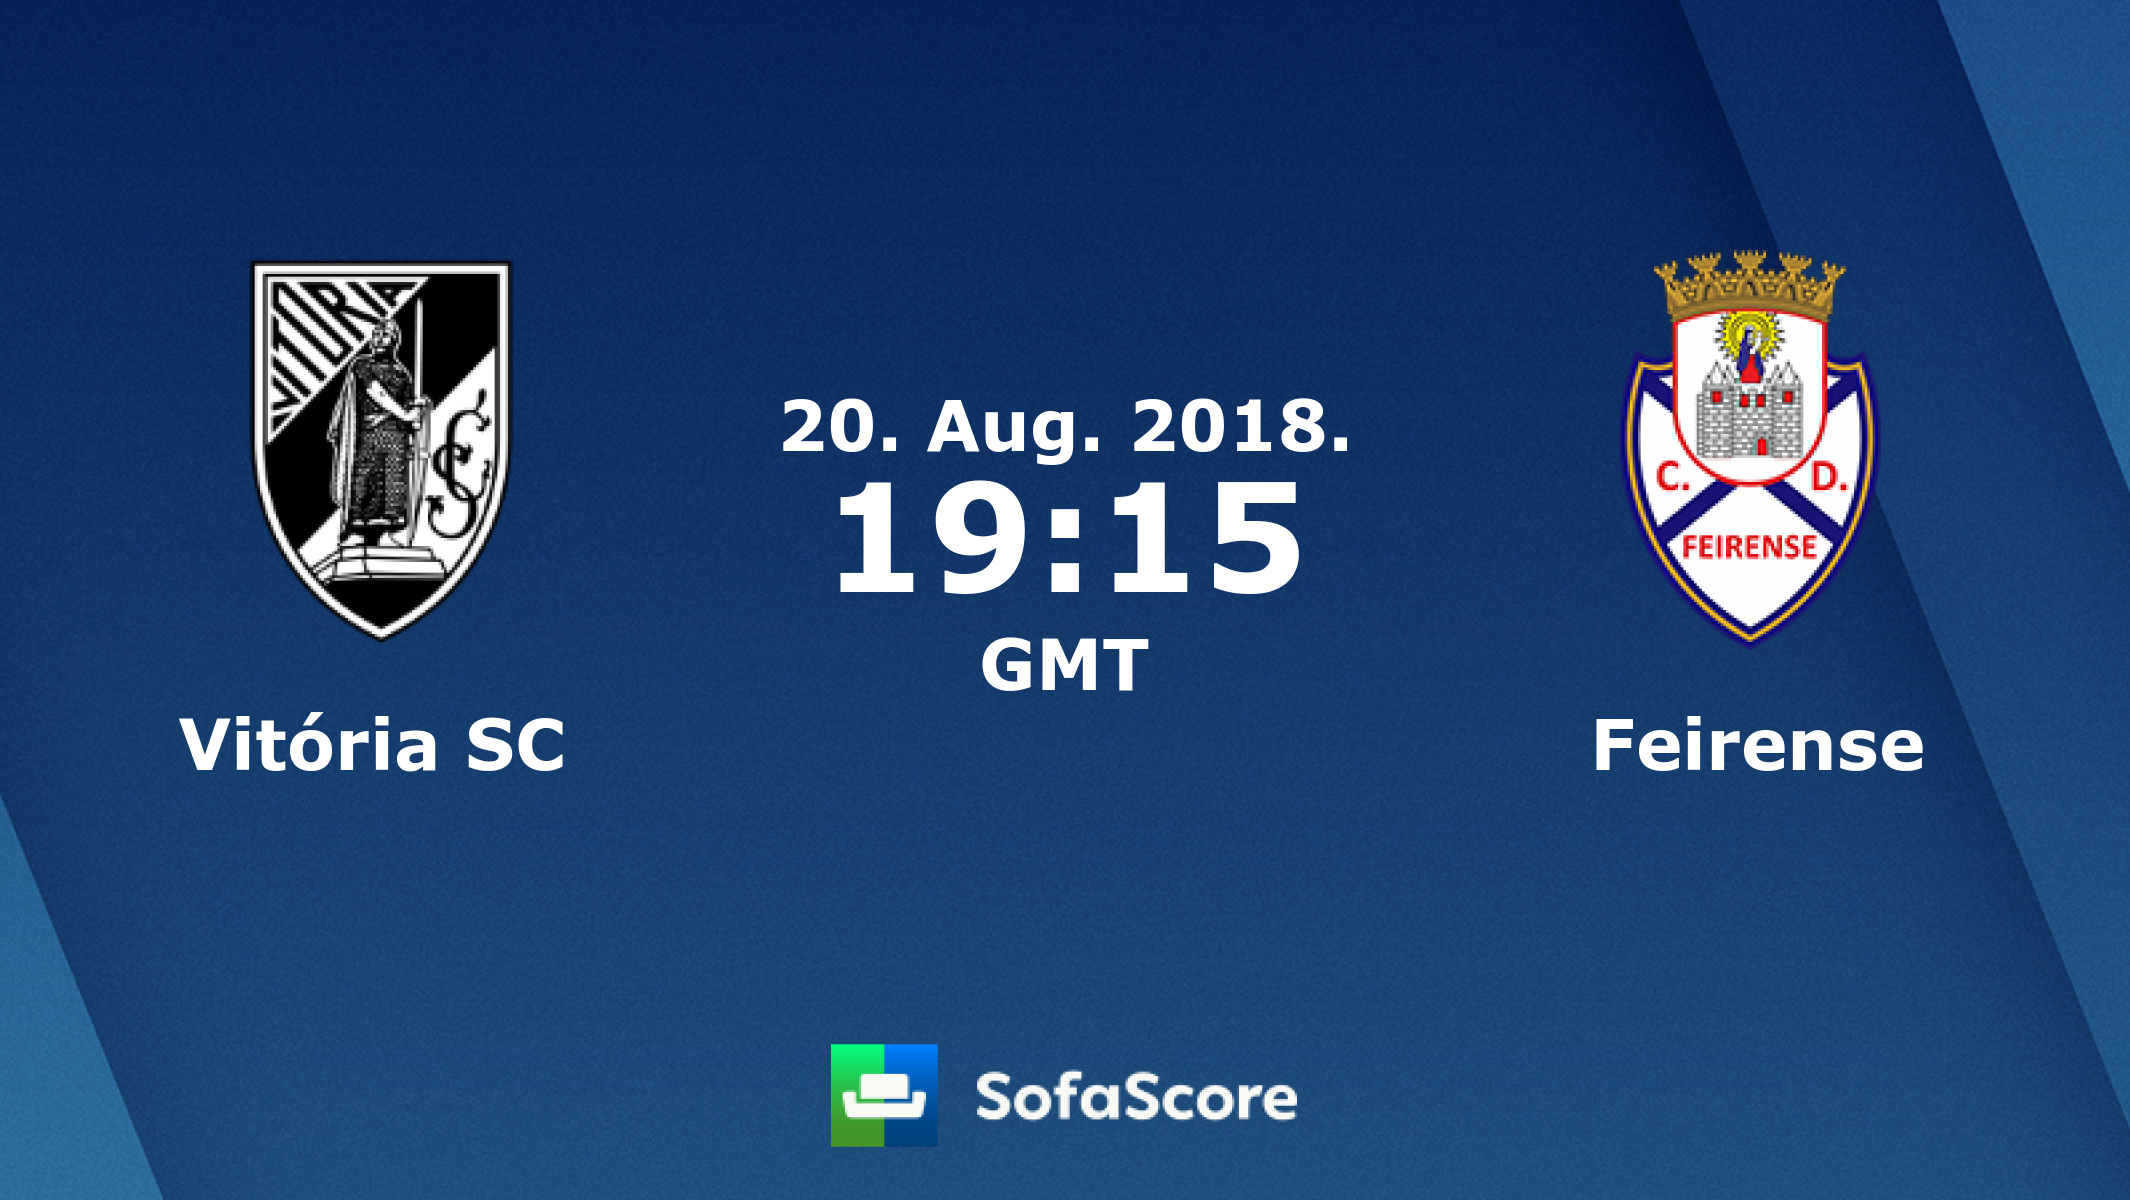 Vit³ria Guimar£es Feirense live score video stream and H2H results SofaScore